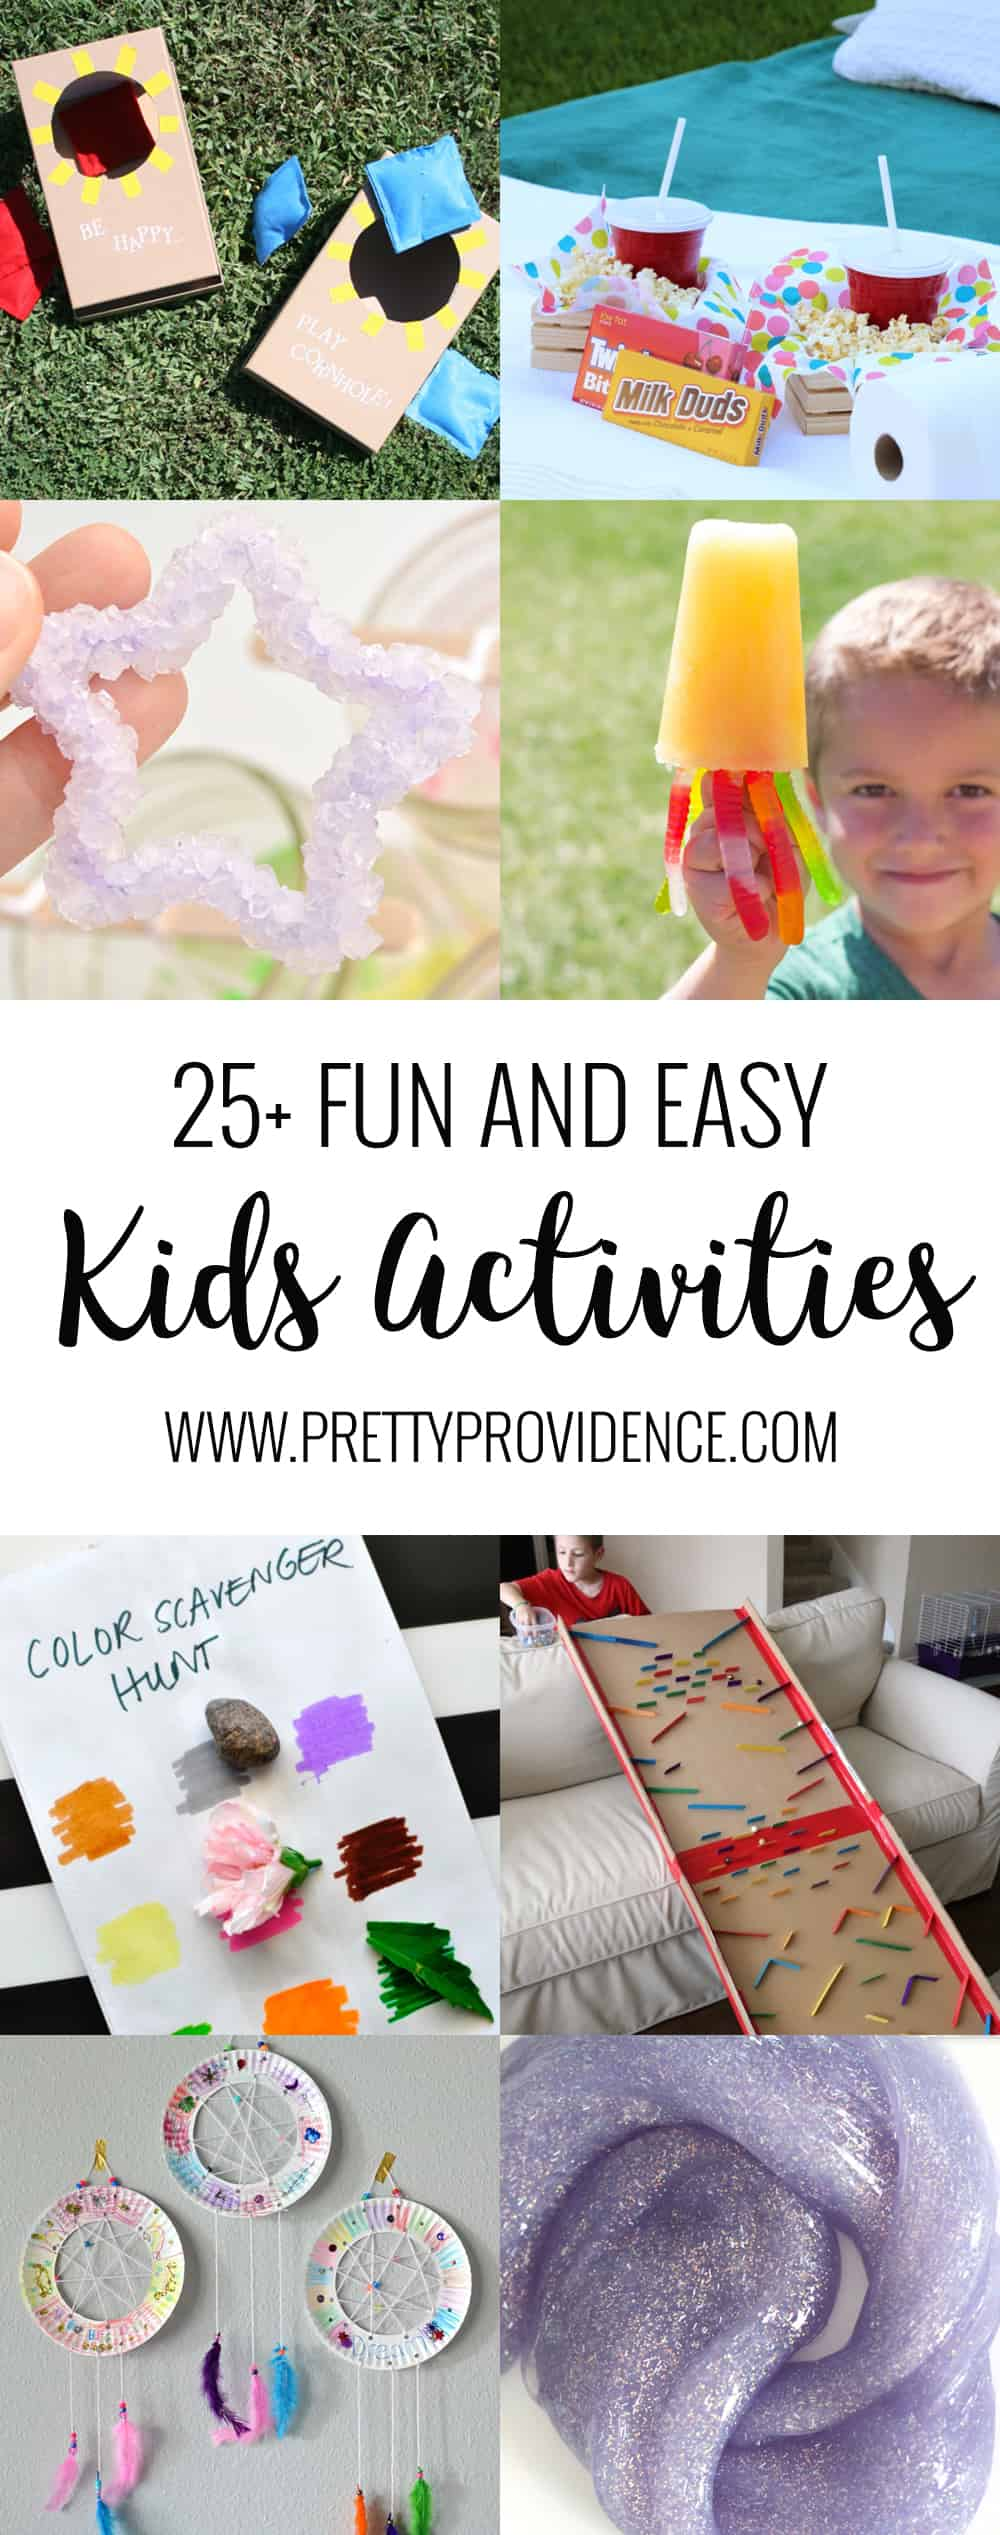 Fun and easy kids activities! Great ideas to keep your kids entertained when they are out of school, etc!